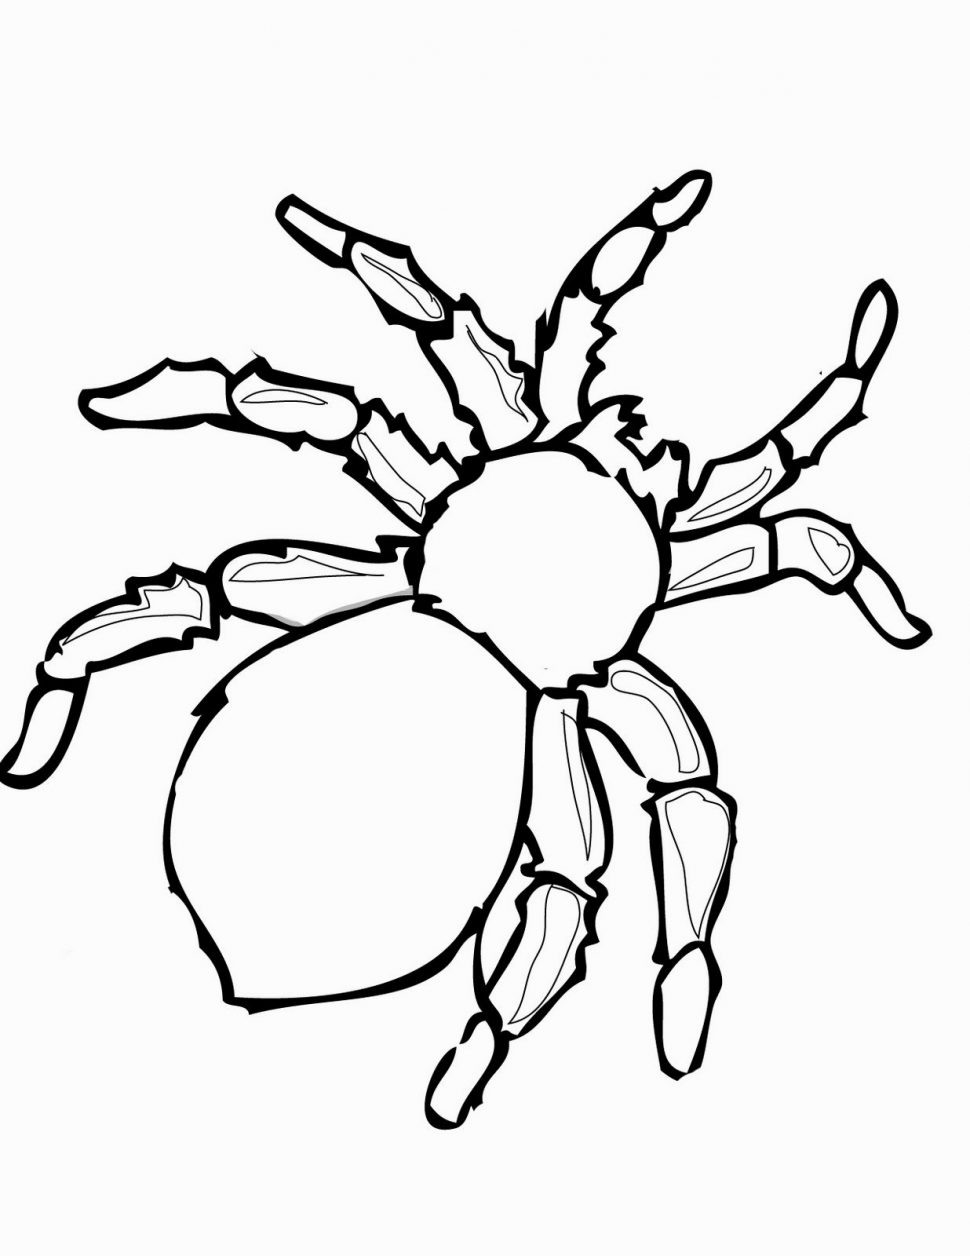 970x1256 Coloring Pages Spider Coloring Sheet Web Pages Spider Coloring